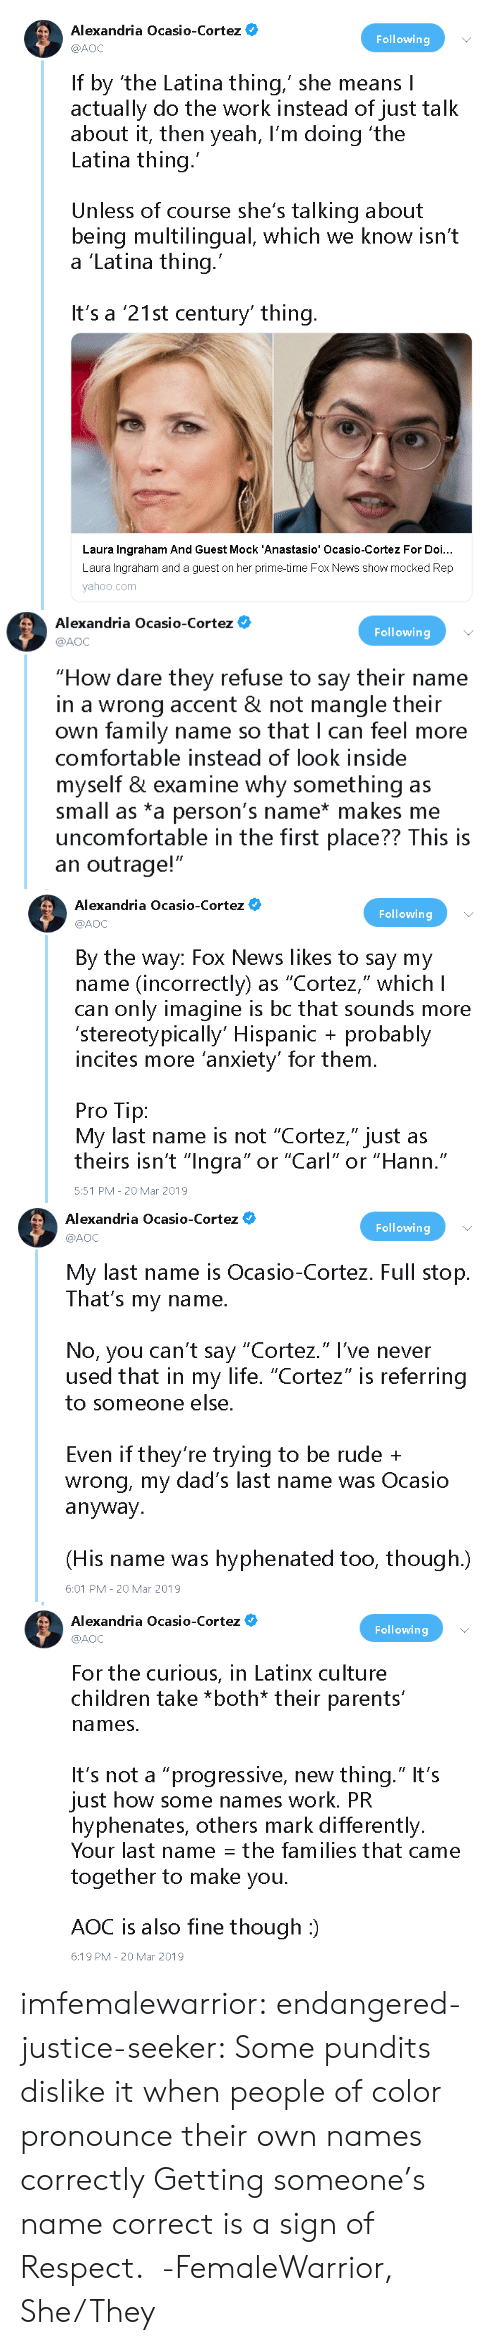 "aoc: Alexandria Ocasio-Cortez  @AOC  Following  If by 'the Latina thing,' she means I  actually do the work instead of just talk  about it, then yeah, I'm doing 'the  Latina thing.  Unless of course she's talking about  being multilingual, which we know isn't  a 'Latina thing  It's a '21st century' thing  Laura Ingraham And Guest Mock 'Anastasio' Ocasio-Cortez For Doi...  Laura Ingraham and a guest on her prime-time Fox News show mocked Rep  yahoo.com   Alexandria Ocasio-Cortez O  @AOC  Following  ""How dare they refuse to say their name  in a wrong accent & not mangle their  own family name so that I can feel more  comfortable instead of look inside  myself & examine why something as  small as *a person's name* makes me  uncomfortable in the first place?? This is  an outrage!""   Alexandria Ocasio-Cortez*  Following  @AOC  By the way: Fox News likes to say my  name (incorrectly) as ""Cortez,"" which lI  can only imagine is bc that sounds more  'stereotypically' Hispanic probably  incites more anxiety' for them  Pro Tip:  My last name is not ""Cortez,"" just as  theirs isn't ""Inara"" or ""Carl"" or ""Hann  .""  5:51 PM -20 Mar 2019   Alexandria Ocasio-Cortez  Following  @AOC  My last name is Ocasio-Cortez. Full stop.  That's my name.  No, you can't say ""Cortez."" l've never  used that in my life. ""Cortez"" is referring  to someone else  Even if they're trying to be rude +  wrong, my dad's last name was Ocasio  anyway.  (His name was hyphenated too, though.)  6:01 PM 20 Mar 2019   Alexandria Ocasio-Cortez  @AOC  Following  For the curious, in Latinx culture  children take *both* their parents'  names.  It's not a ""progressive, new thing."" It's  just how some names work. PR  hyphenates, others mark differently.  Your last name: the families that came  together to make you.  AOC is also fine though :)  6:19 PM-20 Mar 2019 imfemalewarrior:  endangered-justice-seeker:  Some pundits dislike it when people of color pronounce their own names correctly   Getting someone's name correct is a sign of Respect.  -FemaleWarrior, She/They"